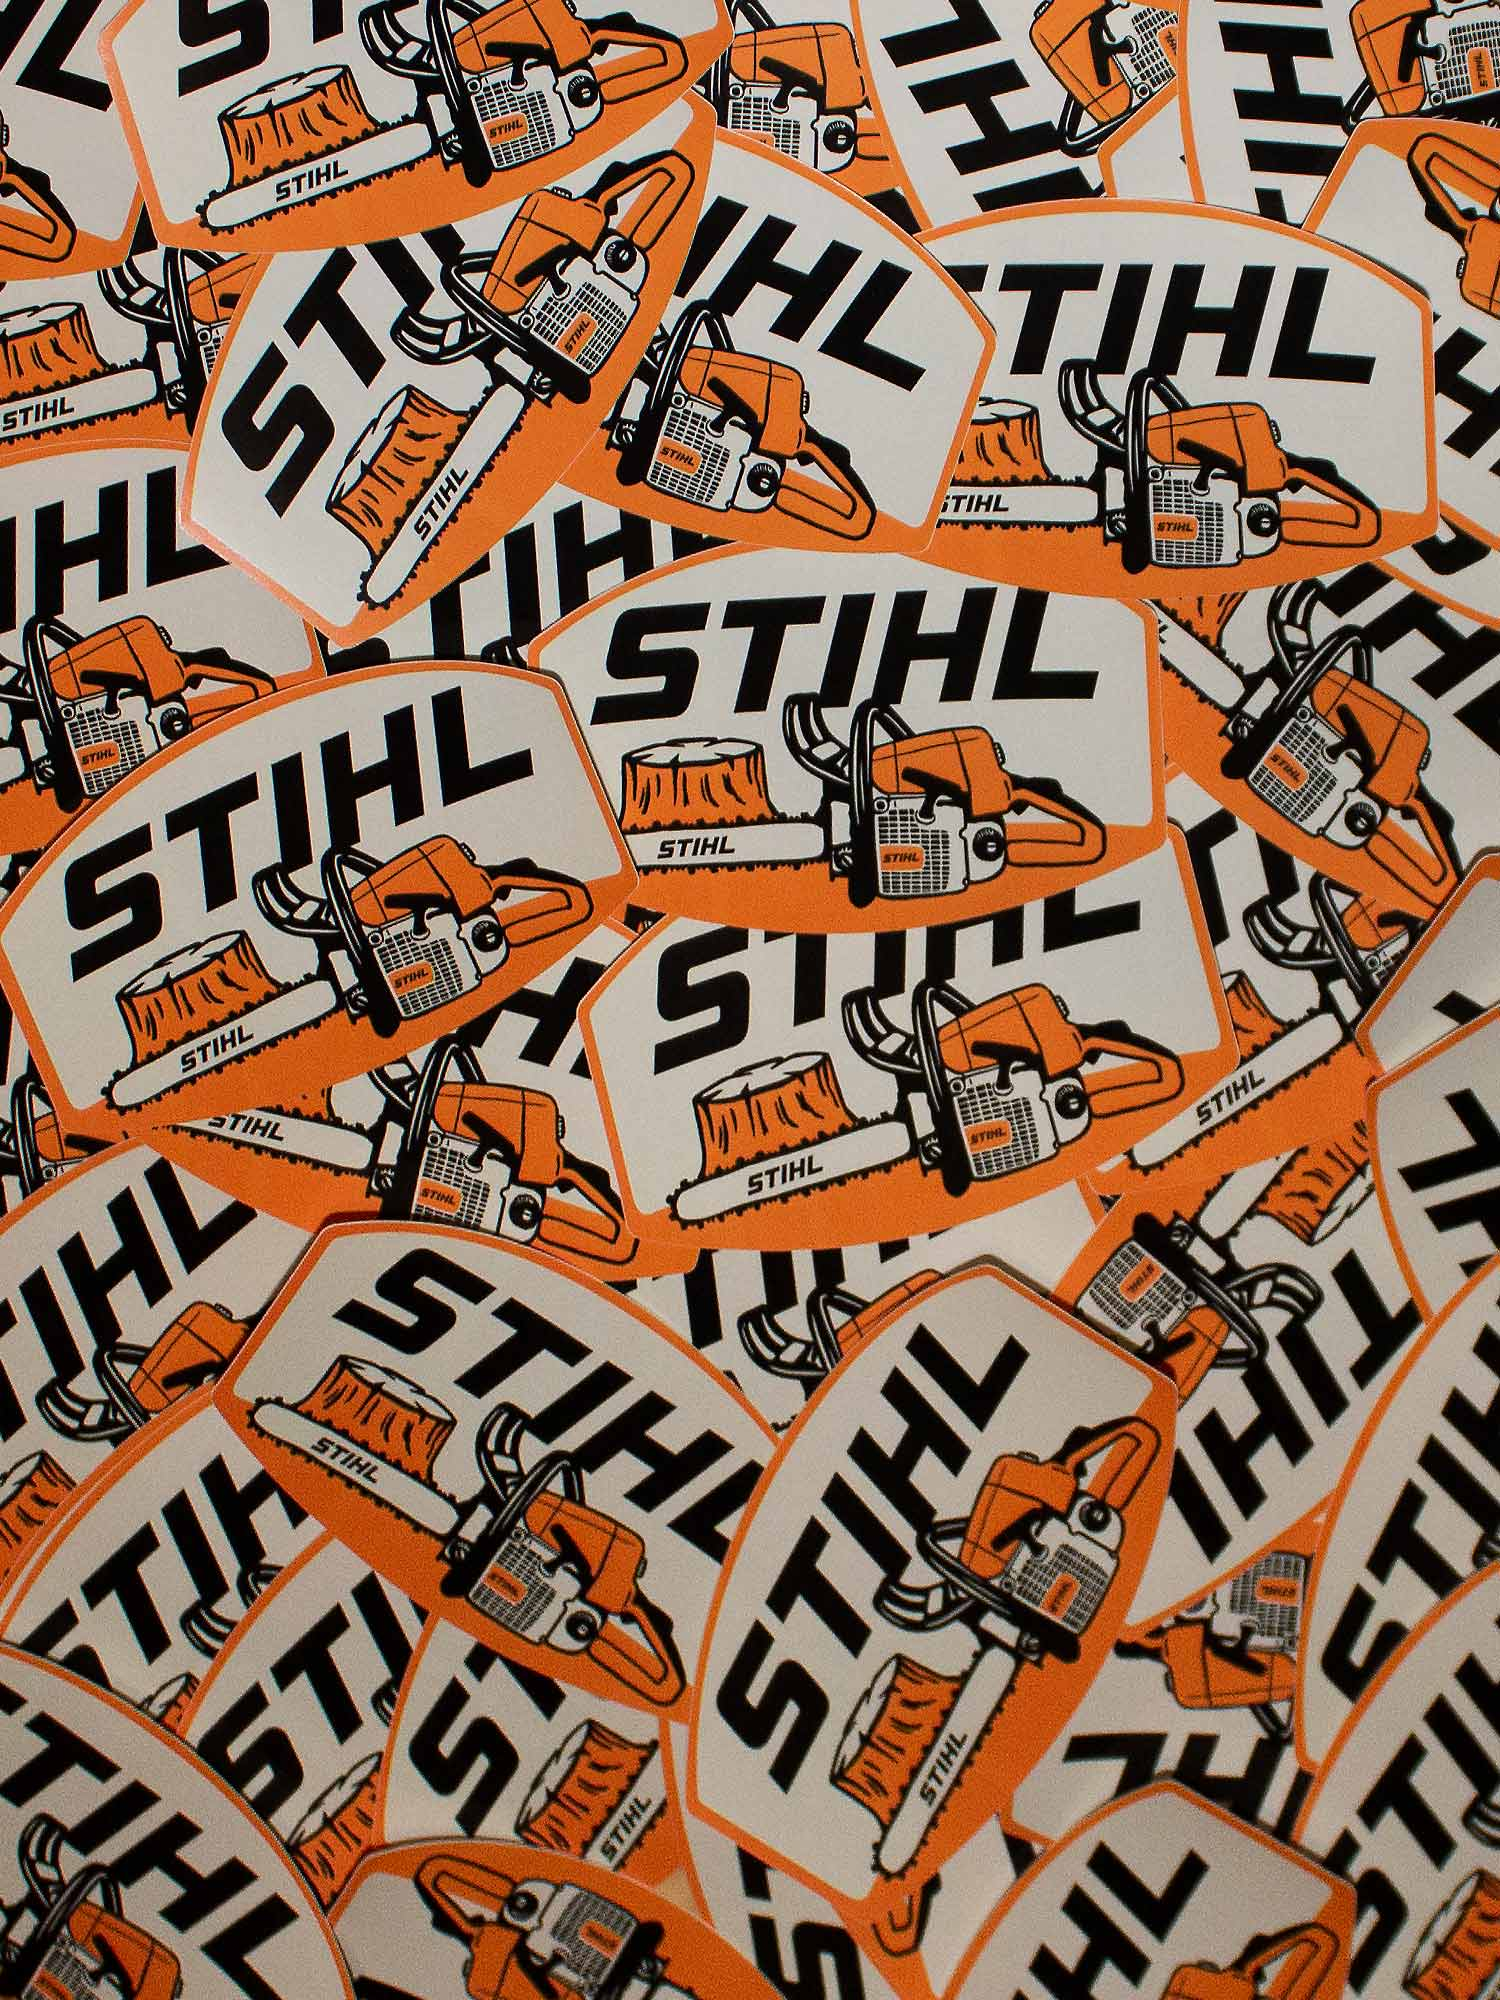 STIHL Saw Stump Decal